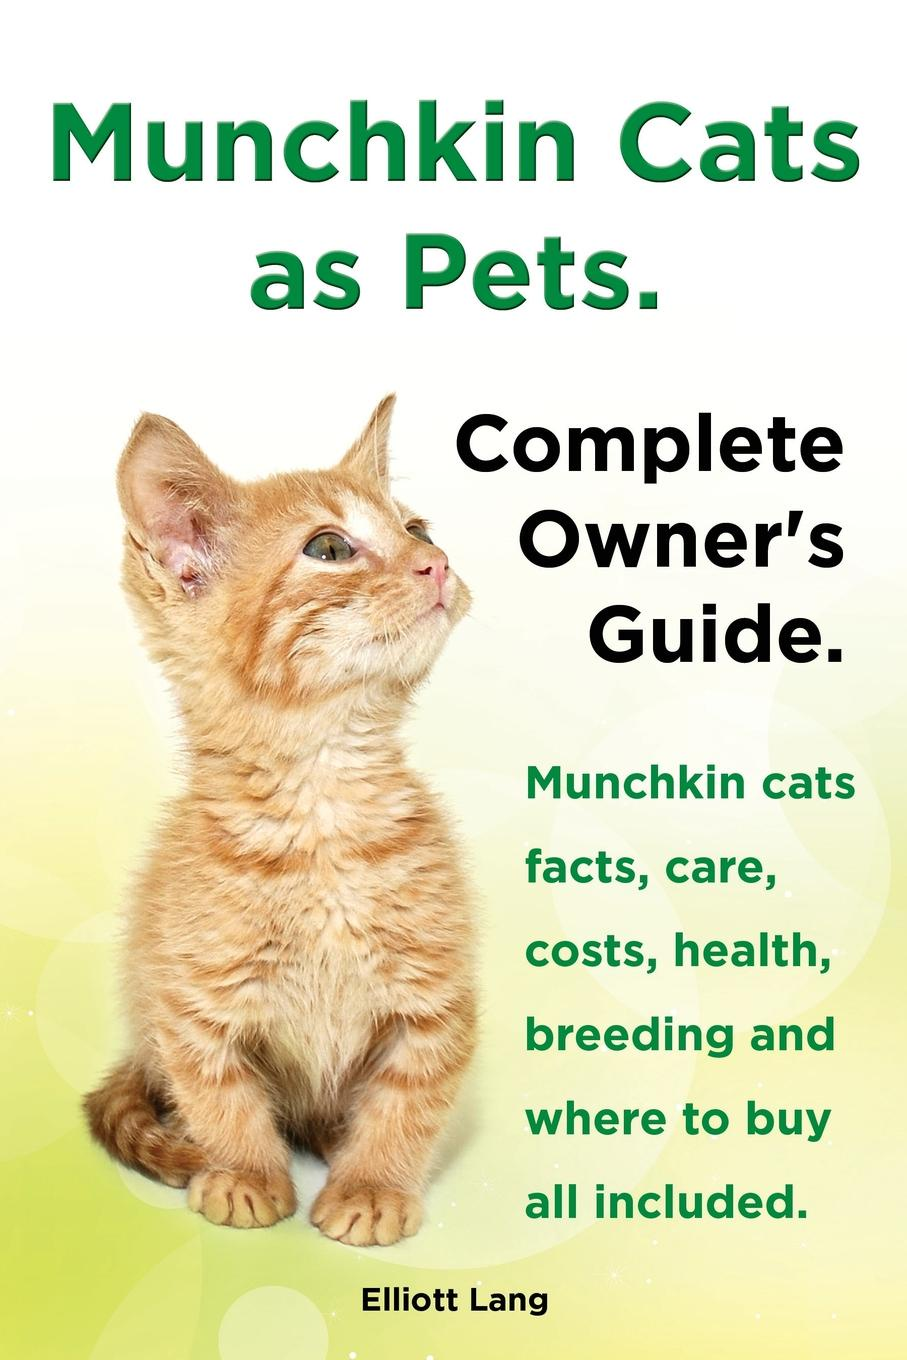 Elliott Lang Munchkin Cats as Pets. Munchkin Cats Facts, Care, Costs, Health, Breeding and Where to Buy All Included. Complete Owner's Guide. цена в Москве и Питере